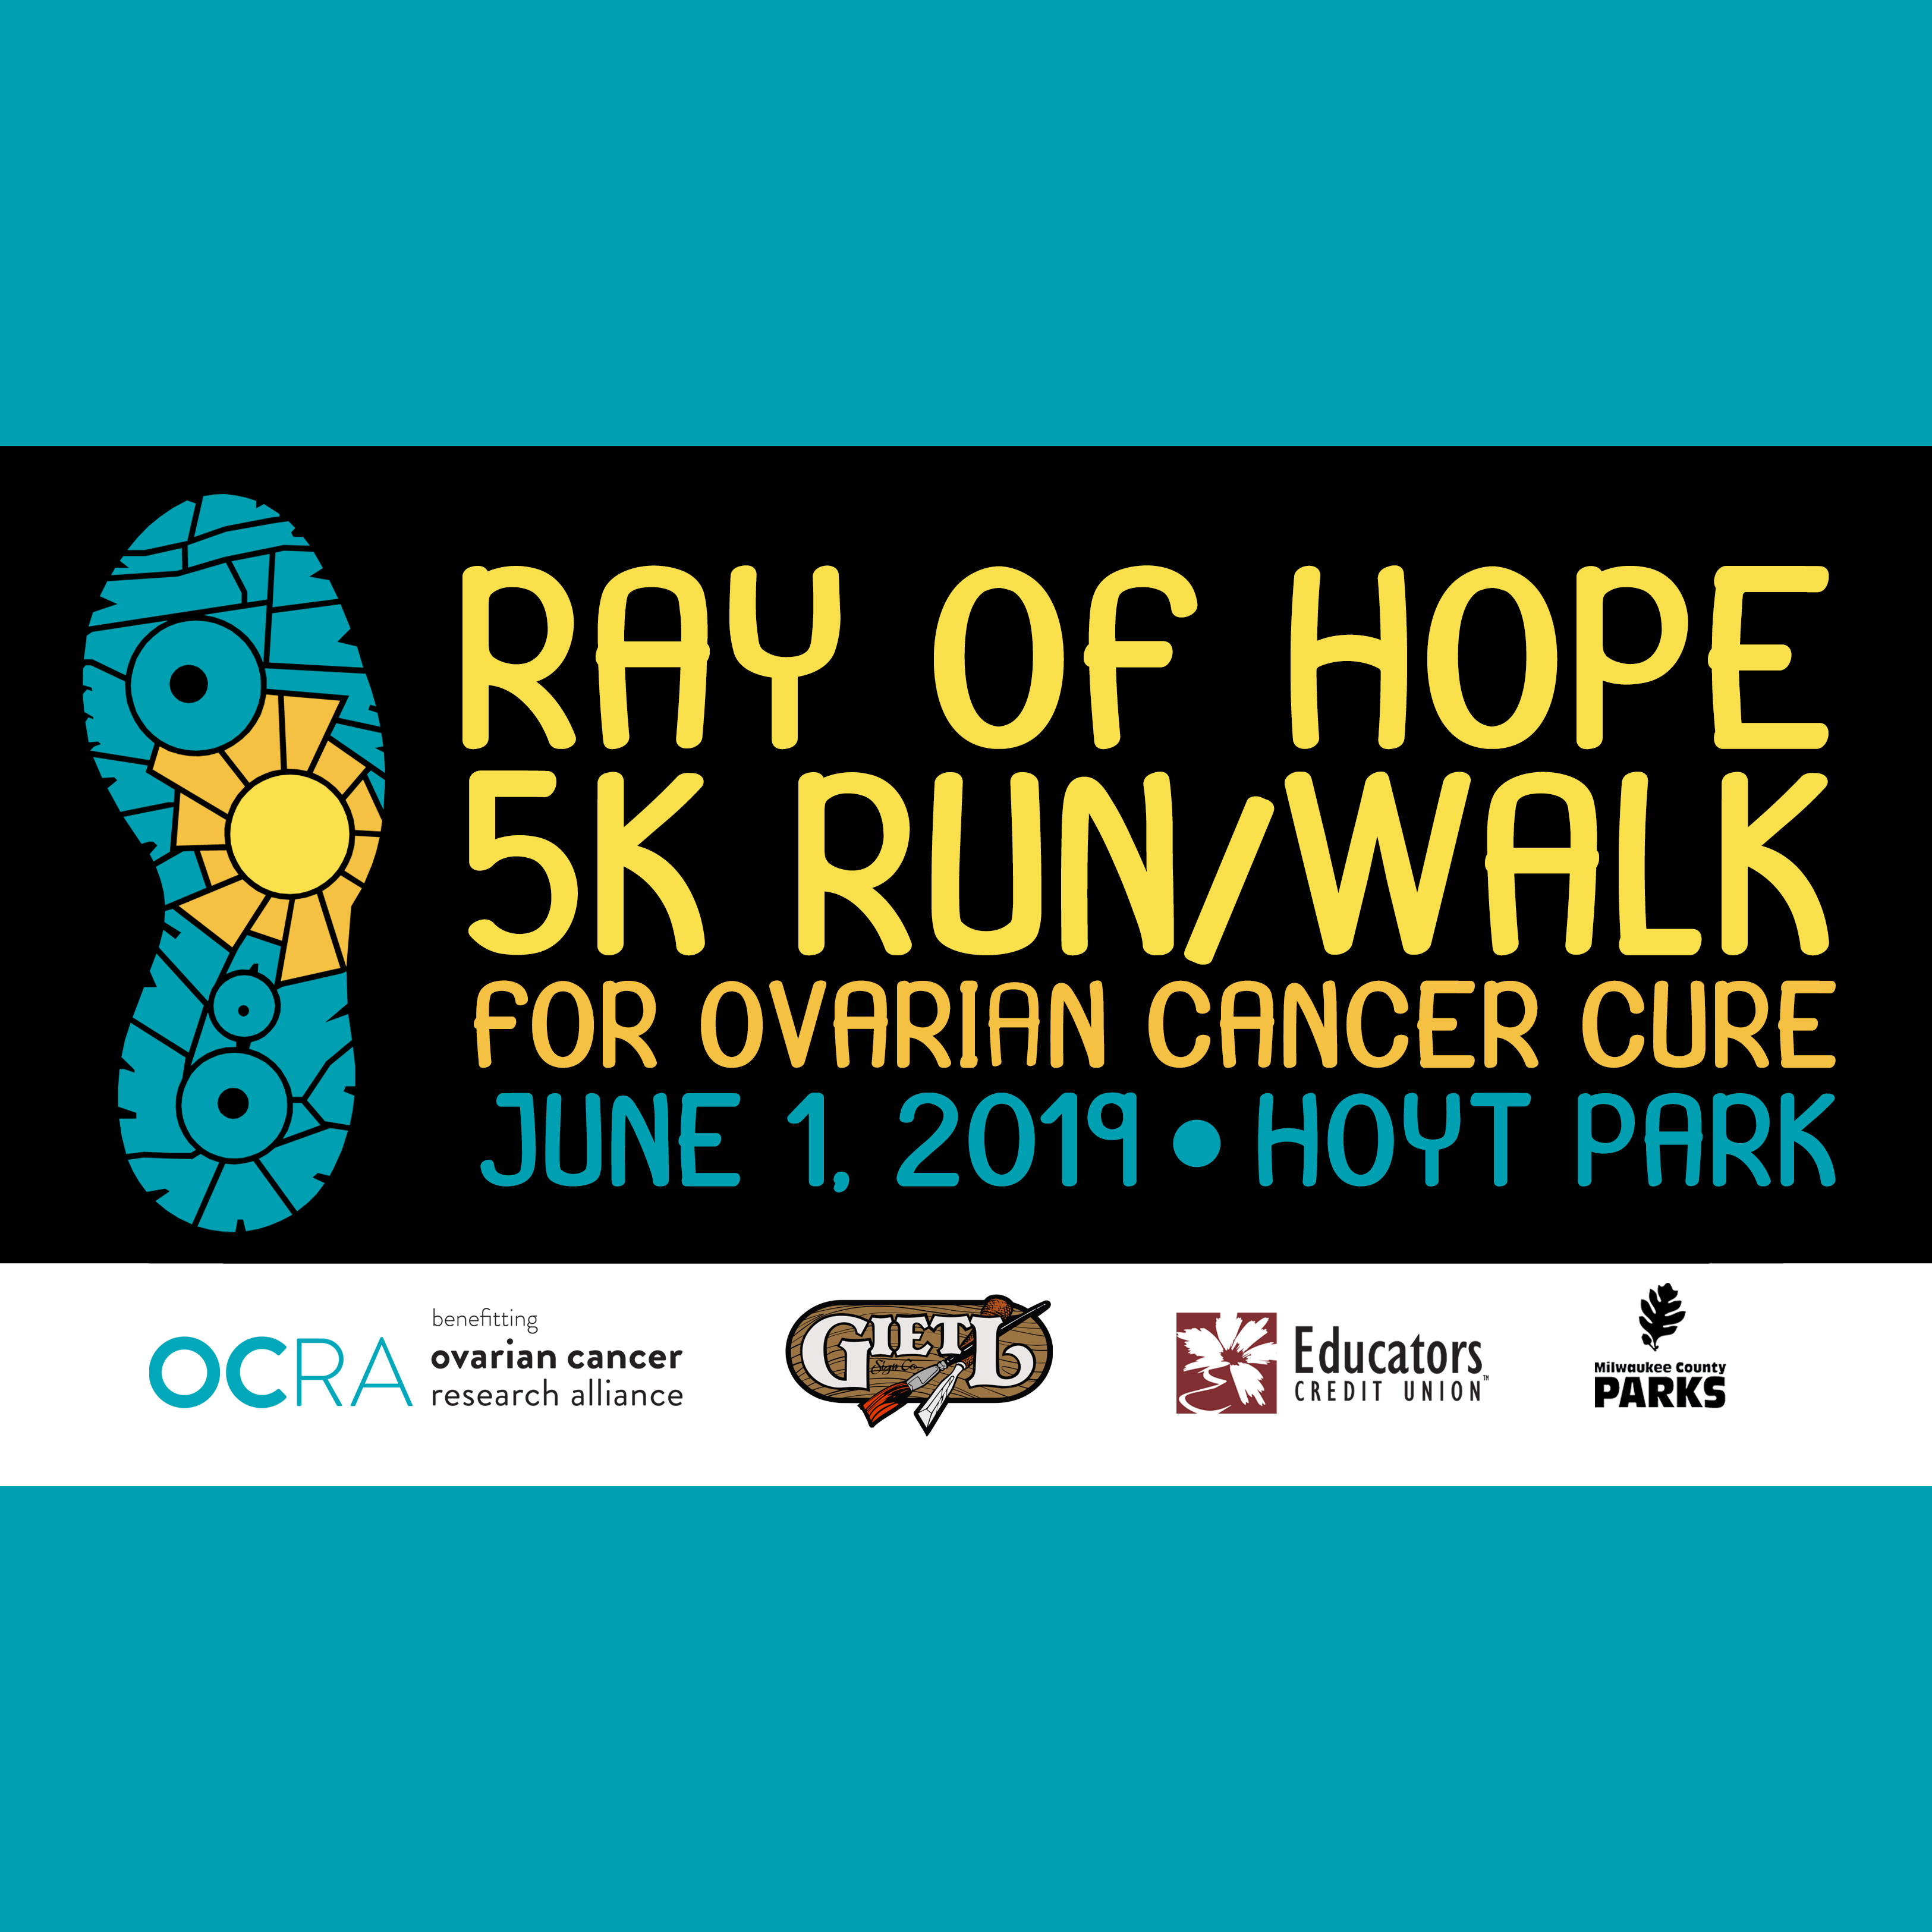 Ray of Hope 5K Run/Walk for Ovarian Cancer Cure